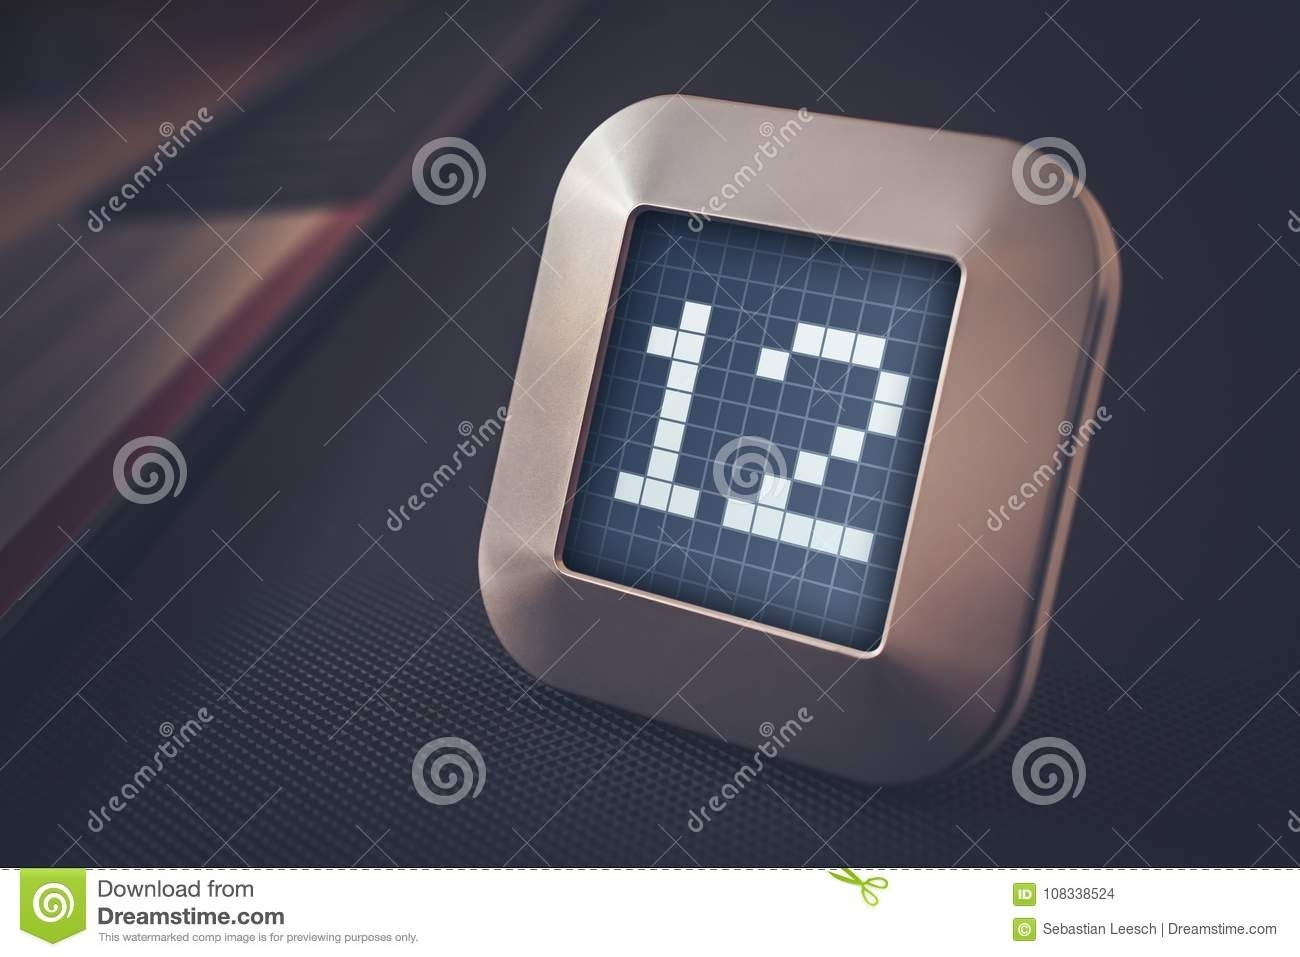 The Number 12 On A Digital Calendar, Thermostat Or Timer Stock Photo_Calendar And Countdown Chrome